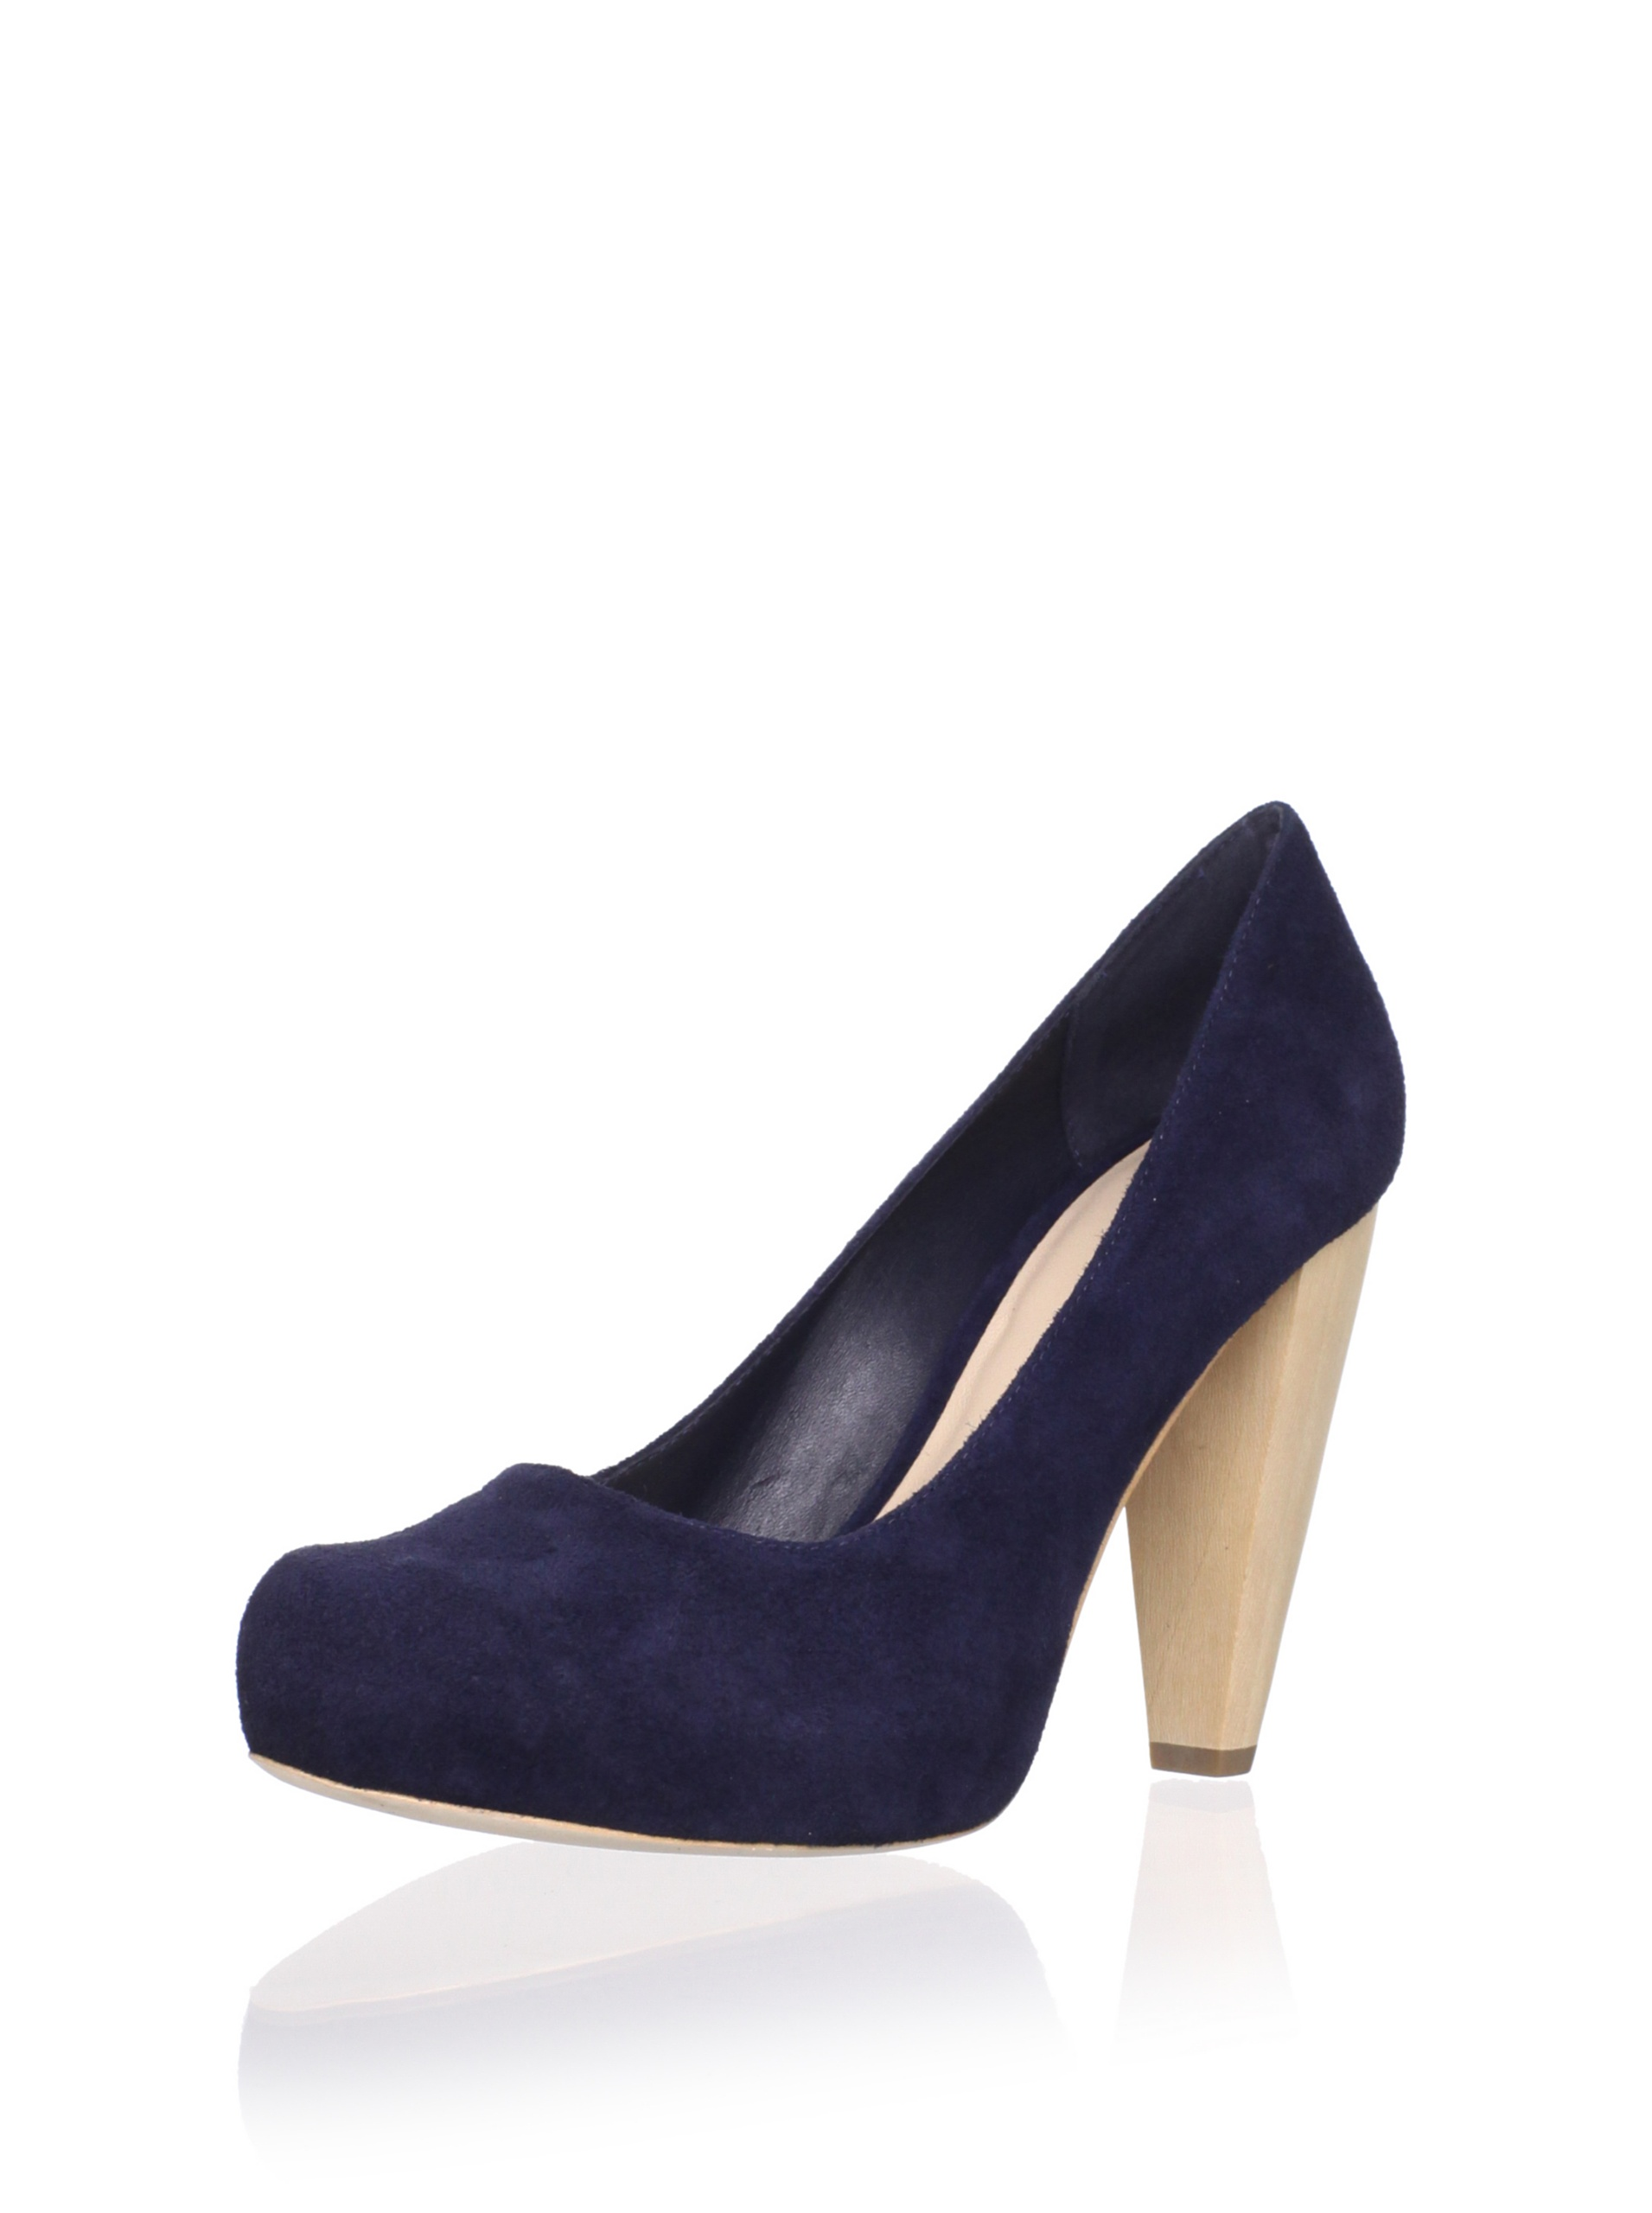 Loeffler Randall Women's Esther Hidden Platform Pump (Navy)